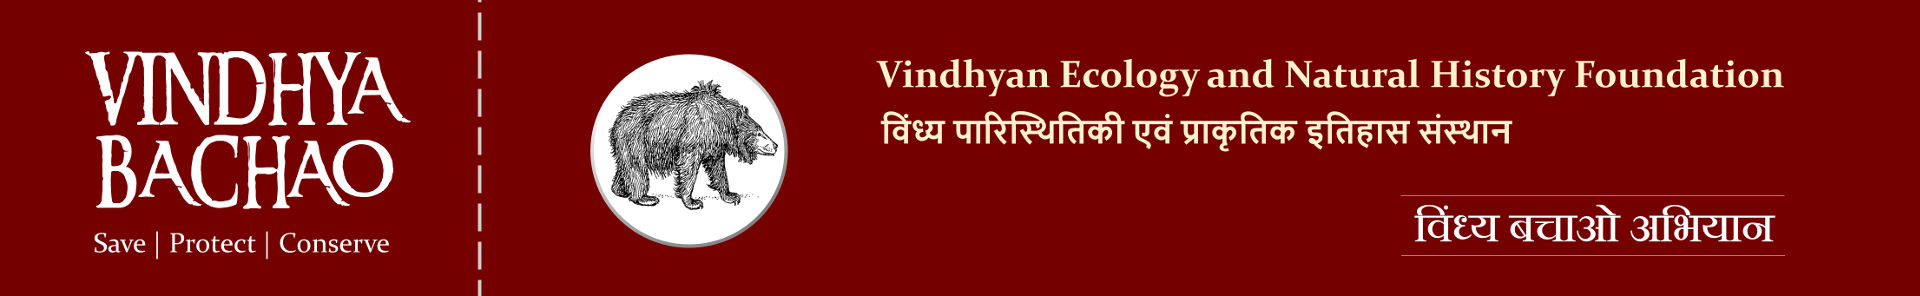 Vindhya Bachao-Vindhyan Ecology and Natural History Foundation